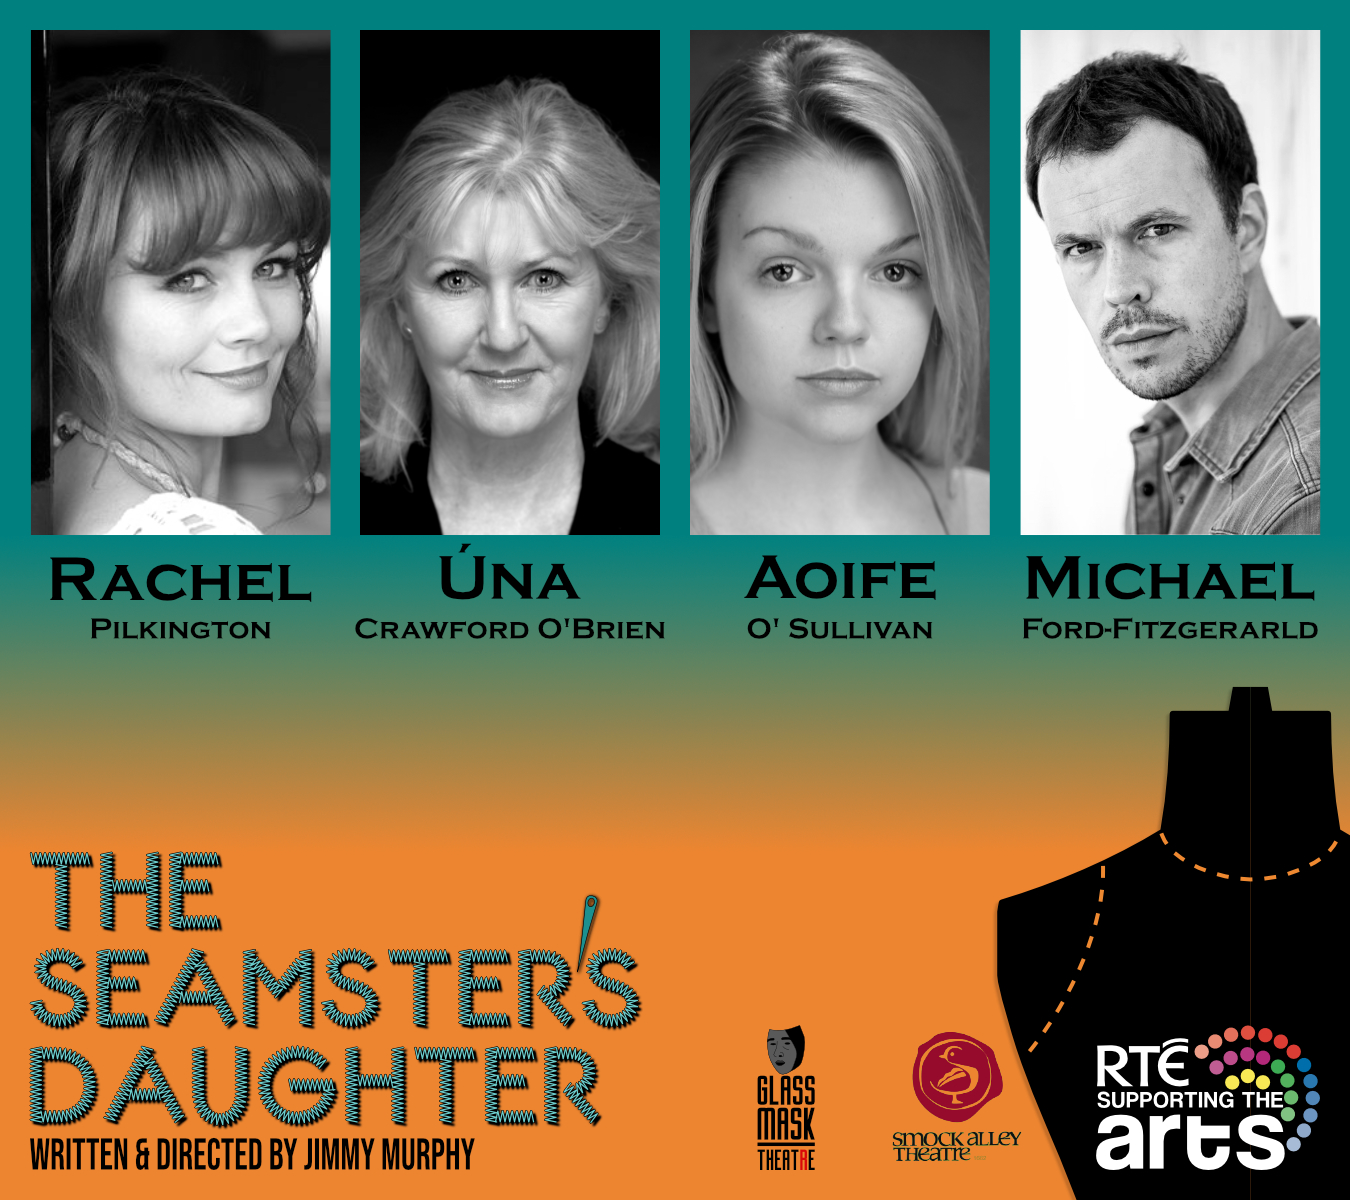 The Seamster's Daughter - Smock Alley, April 15th - May 4th 2019.Written and Directed by Jimmy Murphy.Cast: Rachel Pilkington, Úna Crawford O'Brien, Aoife O'Sullivan, and Michael Ford-FitzGerald.Production Team: Michael Browne, Rachael Kivlehan, and Larissa BrigattiThanks to Smock Alley Theatre, RTÉ Supporting the Arts, and ArtificialGrass.ie